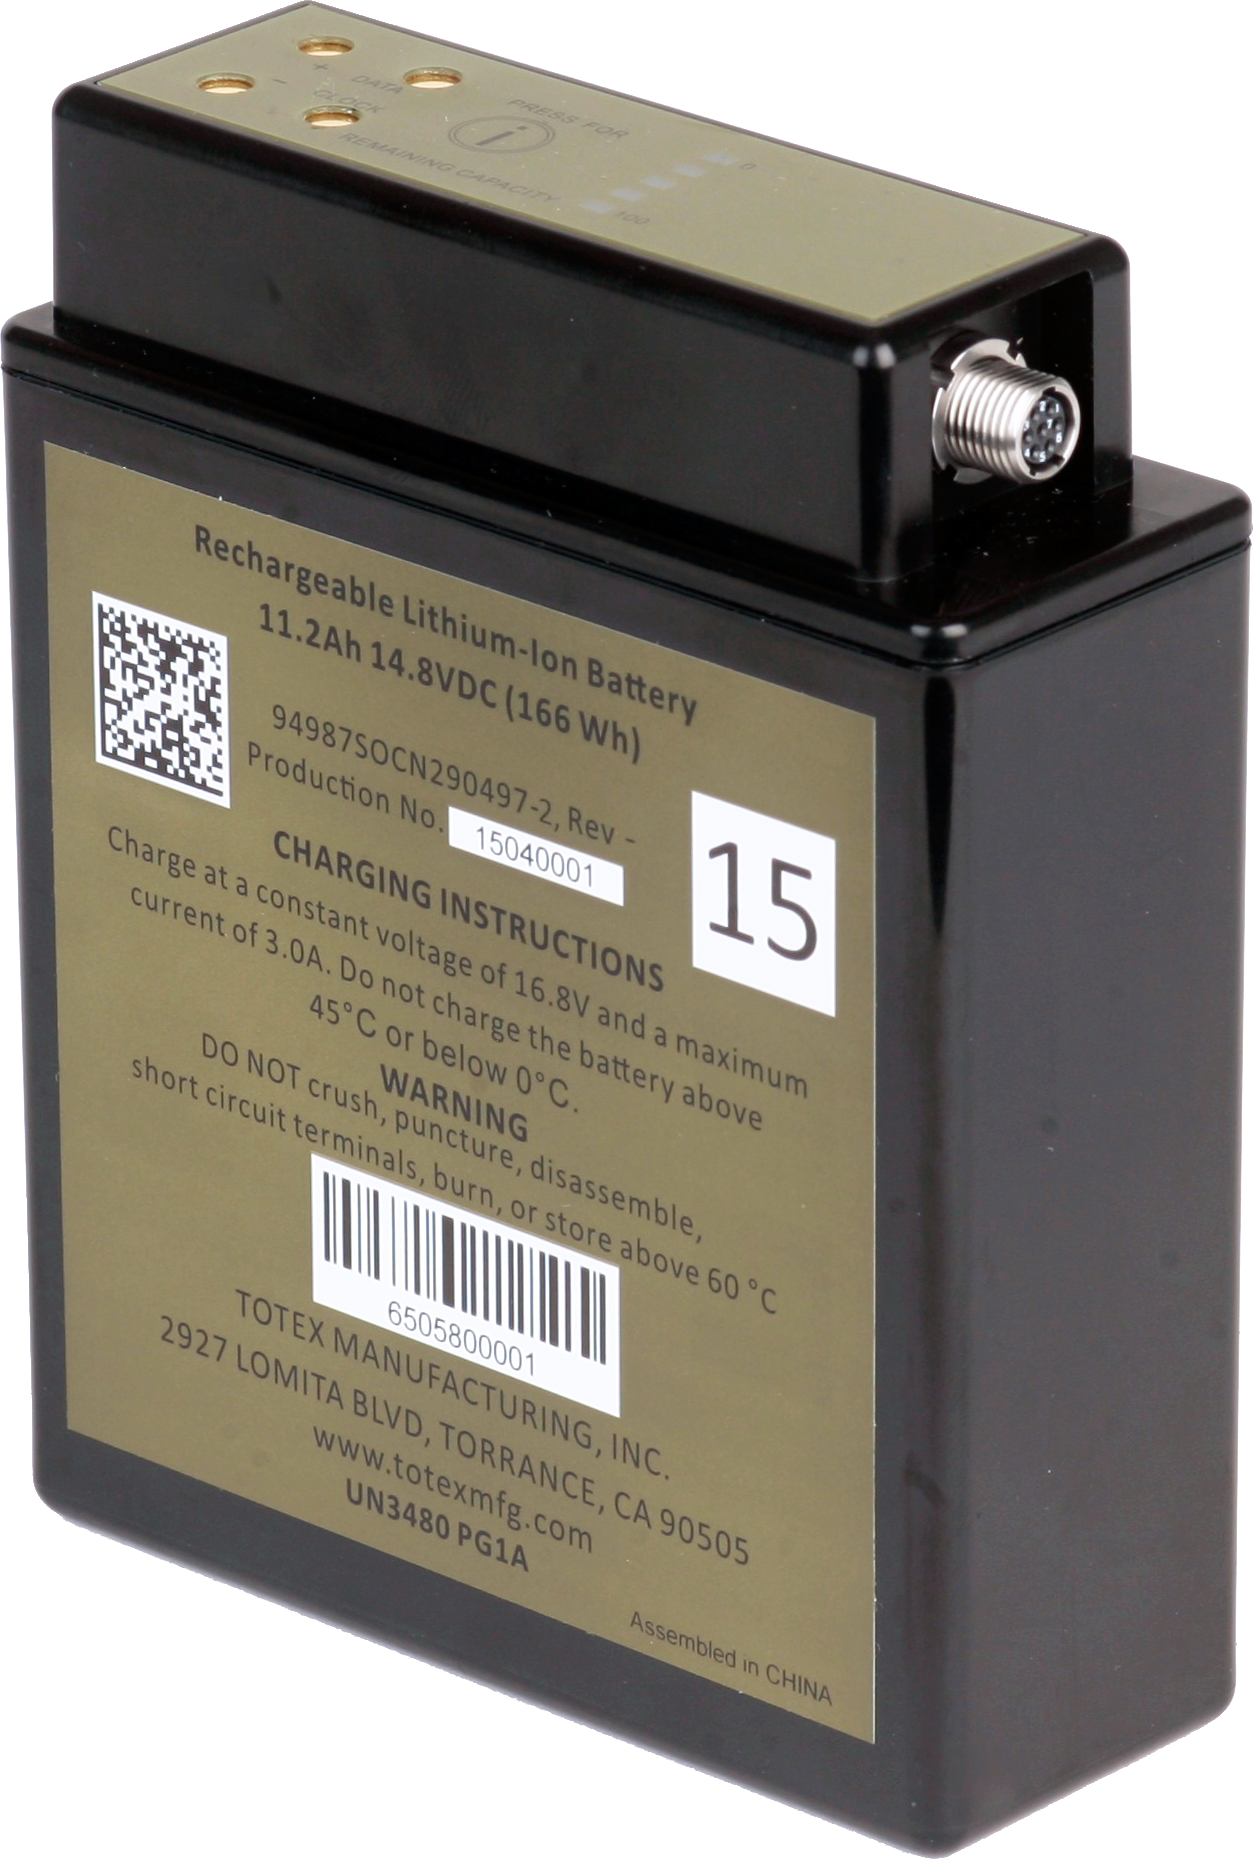 Advanced Battery And Charger Solutions Provided By Totex Lithiumion One Schematic Military Applications